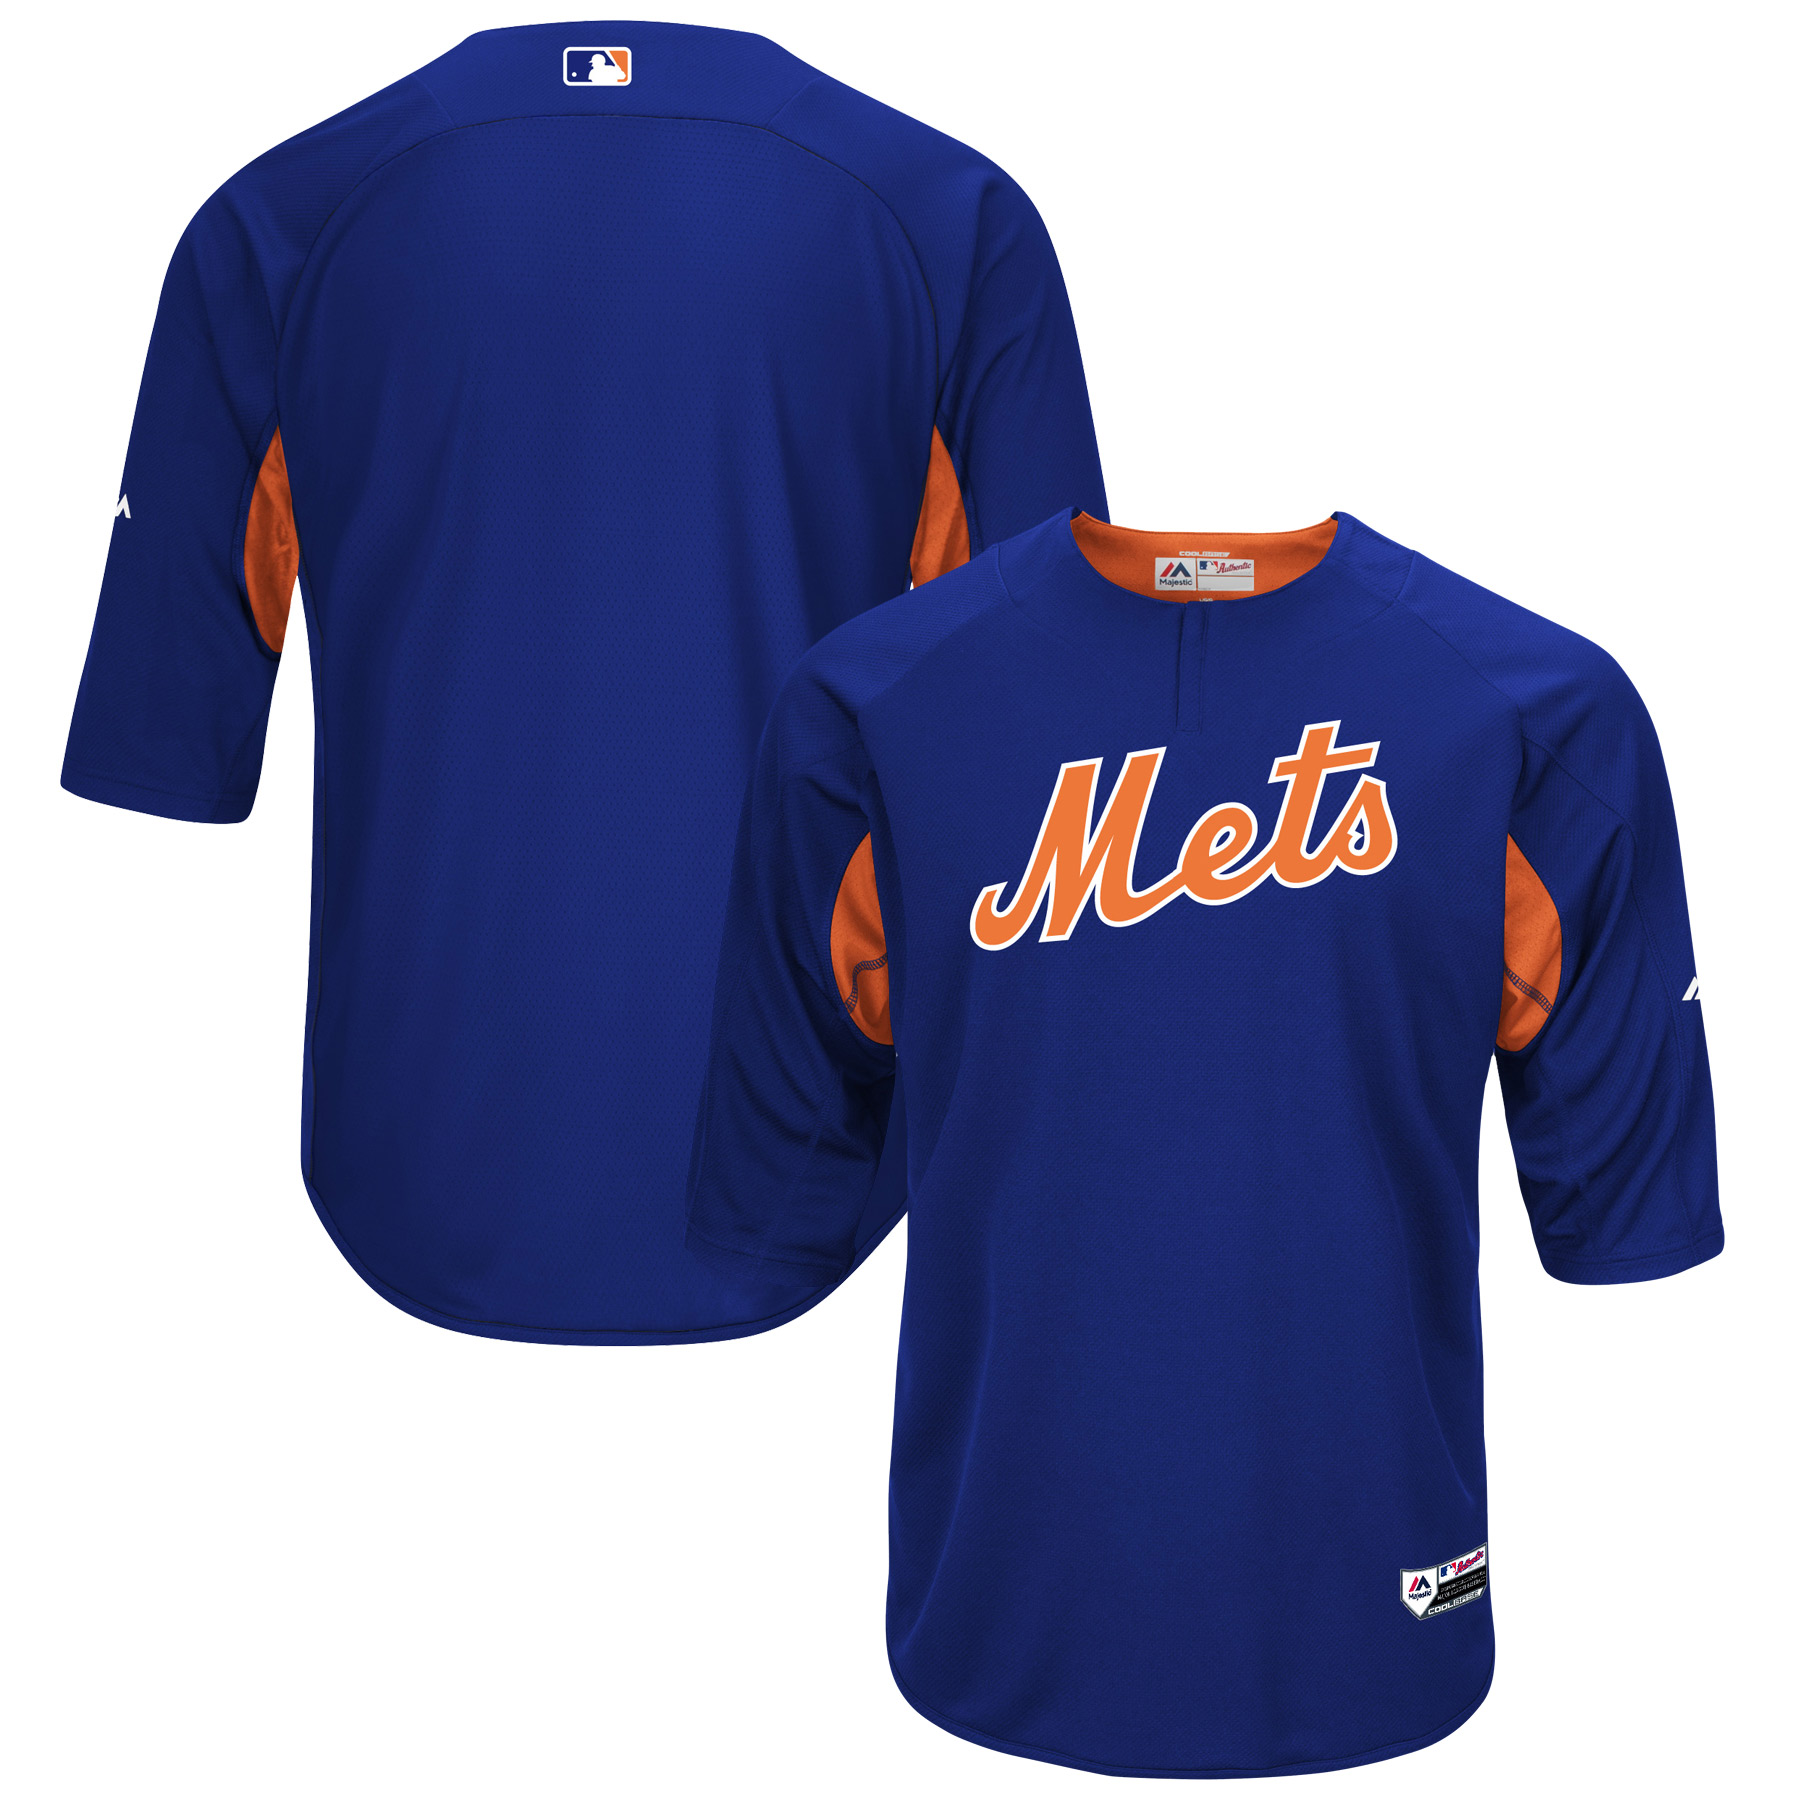 New York Mets Majestic Authentic Collection On-Field 3/4-Sleeve Batting Practice Jersey - Royal/Orange